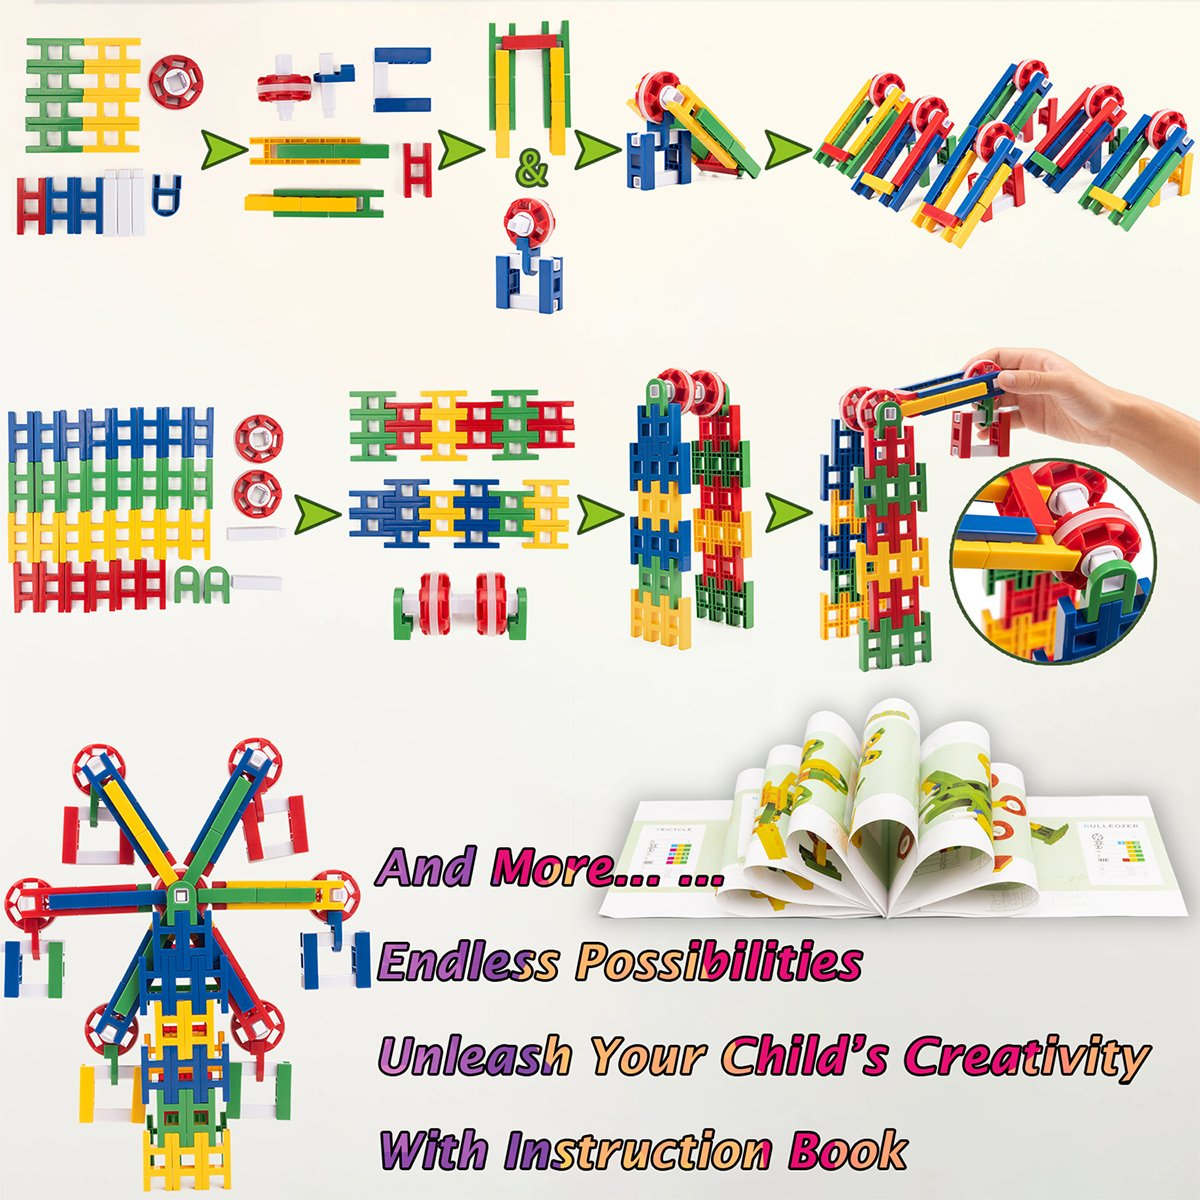 2953aff7c3e5 cossy STEM Learning Toy Engineering Construction Building Blocks 208 Pieces  Kids Educational Toy for Boys and Girls Ages 3 4 5 6 7 8 9 Year Old (208  Pcs)